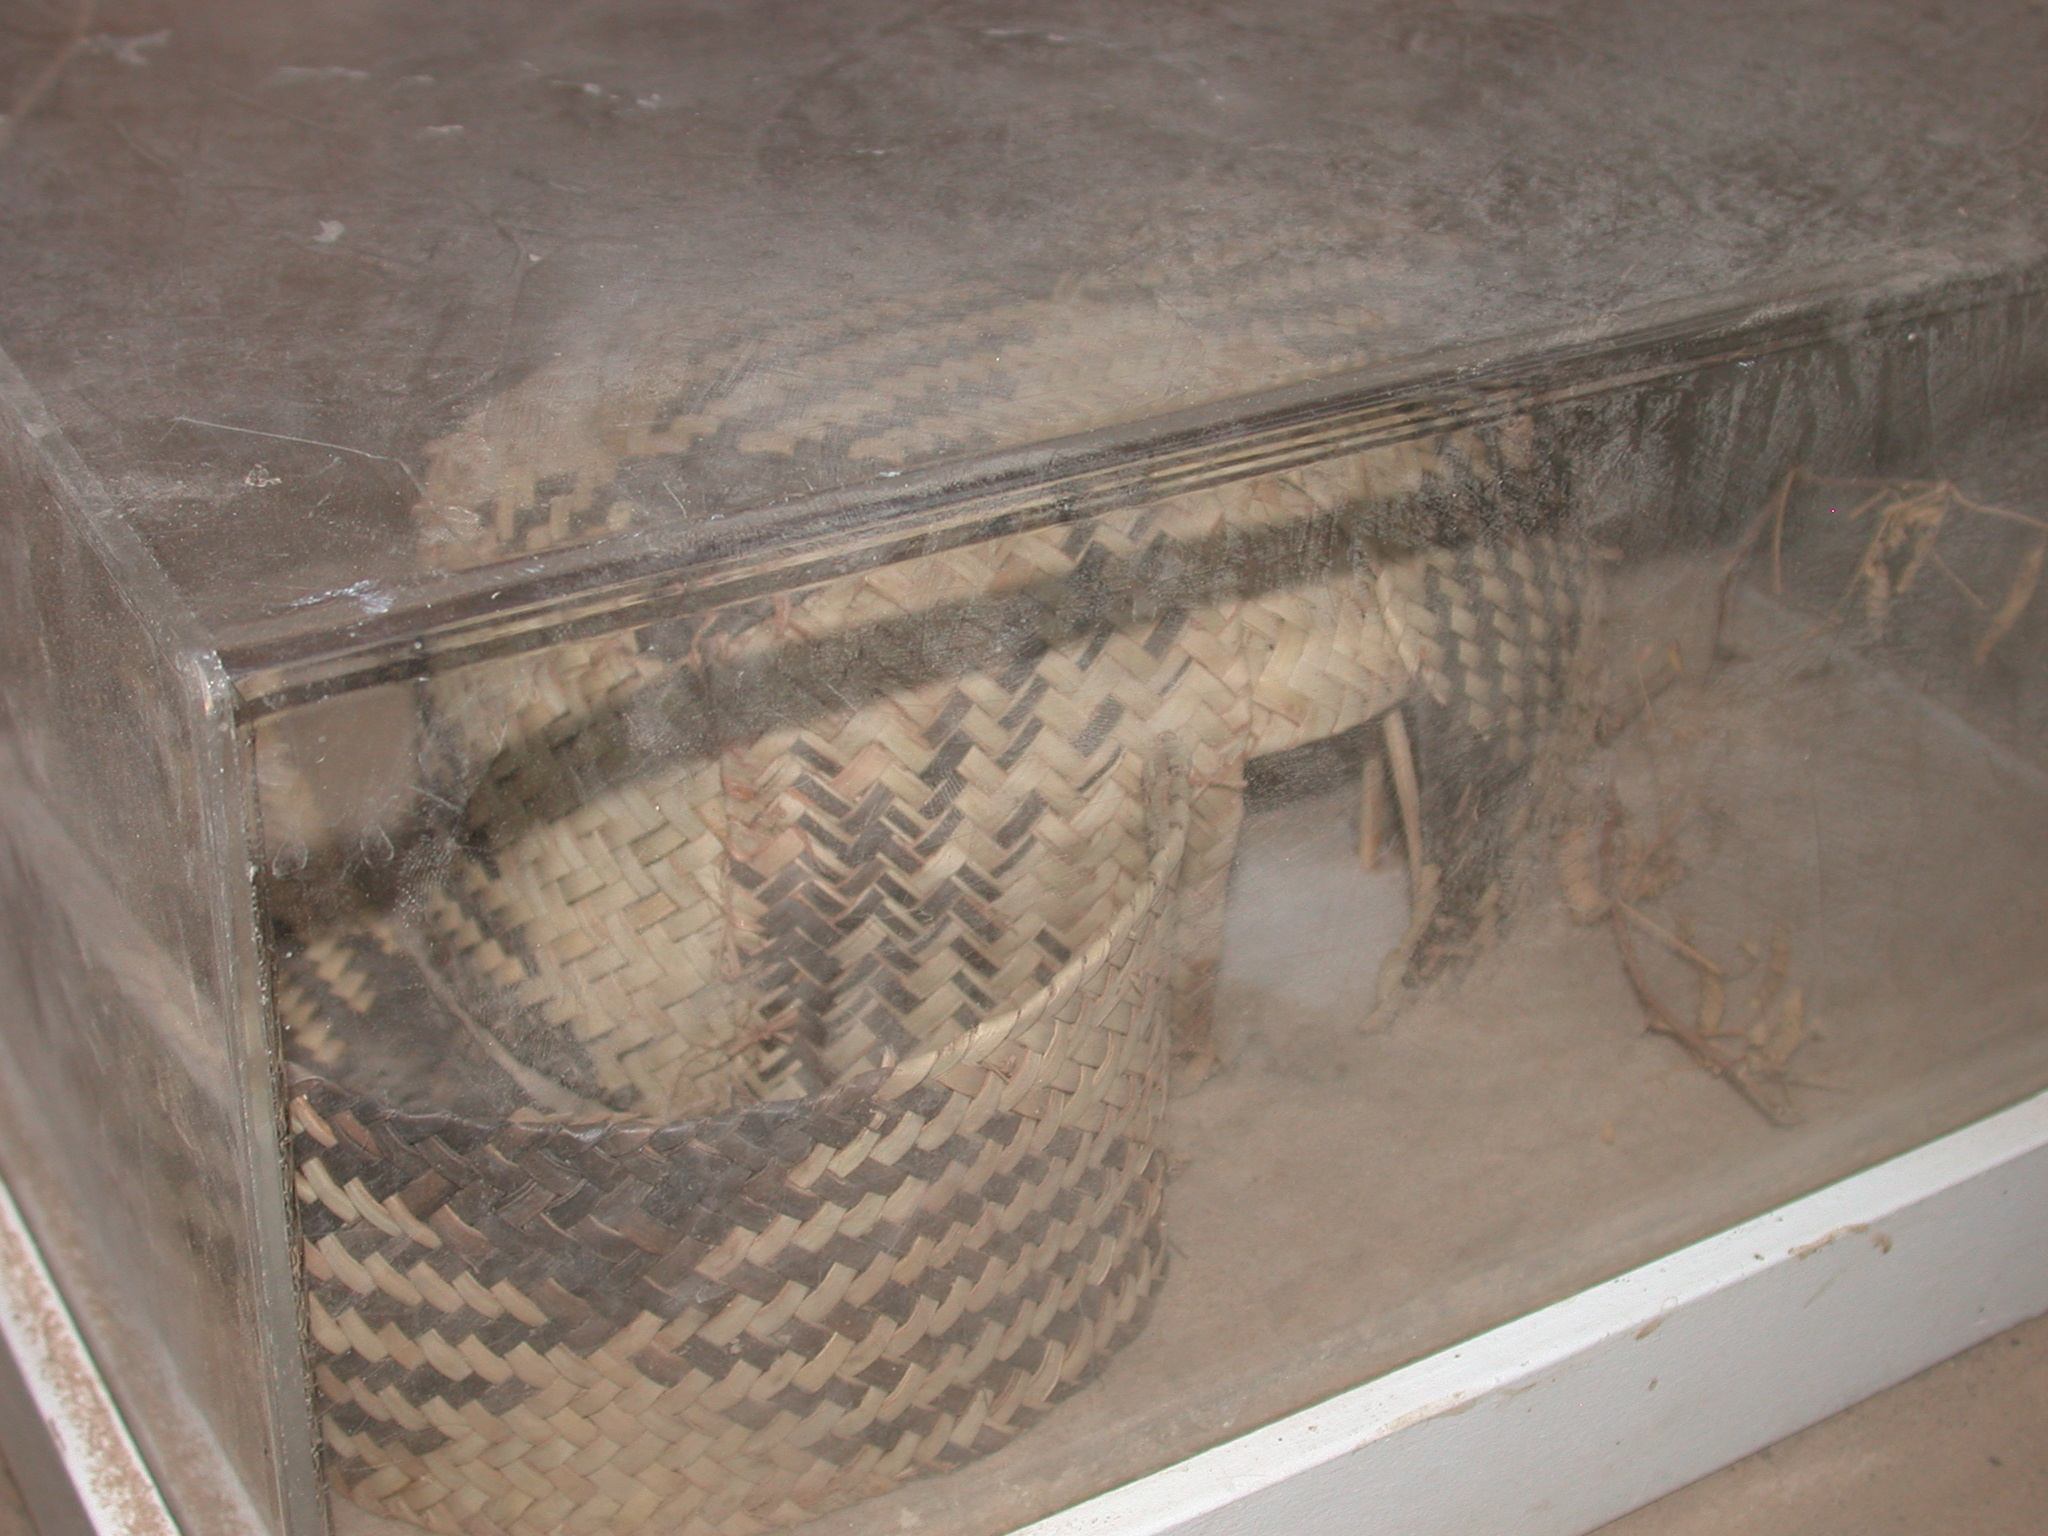 Model of Thatch Hut, Timbuktu Ethnological Museum, Timbuktu, Mali